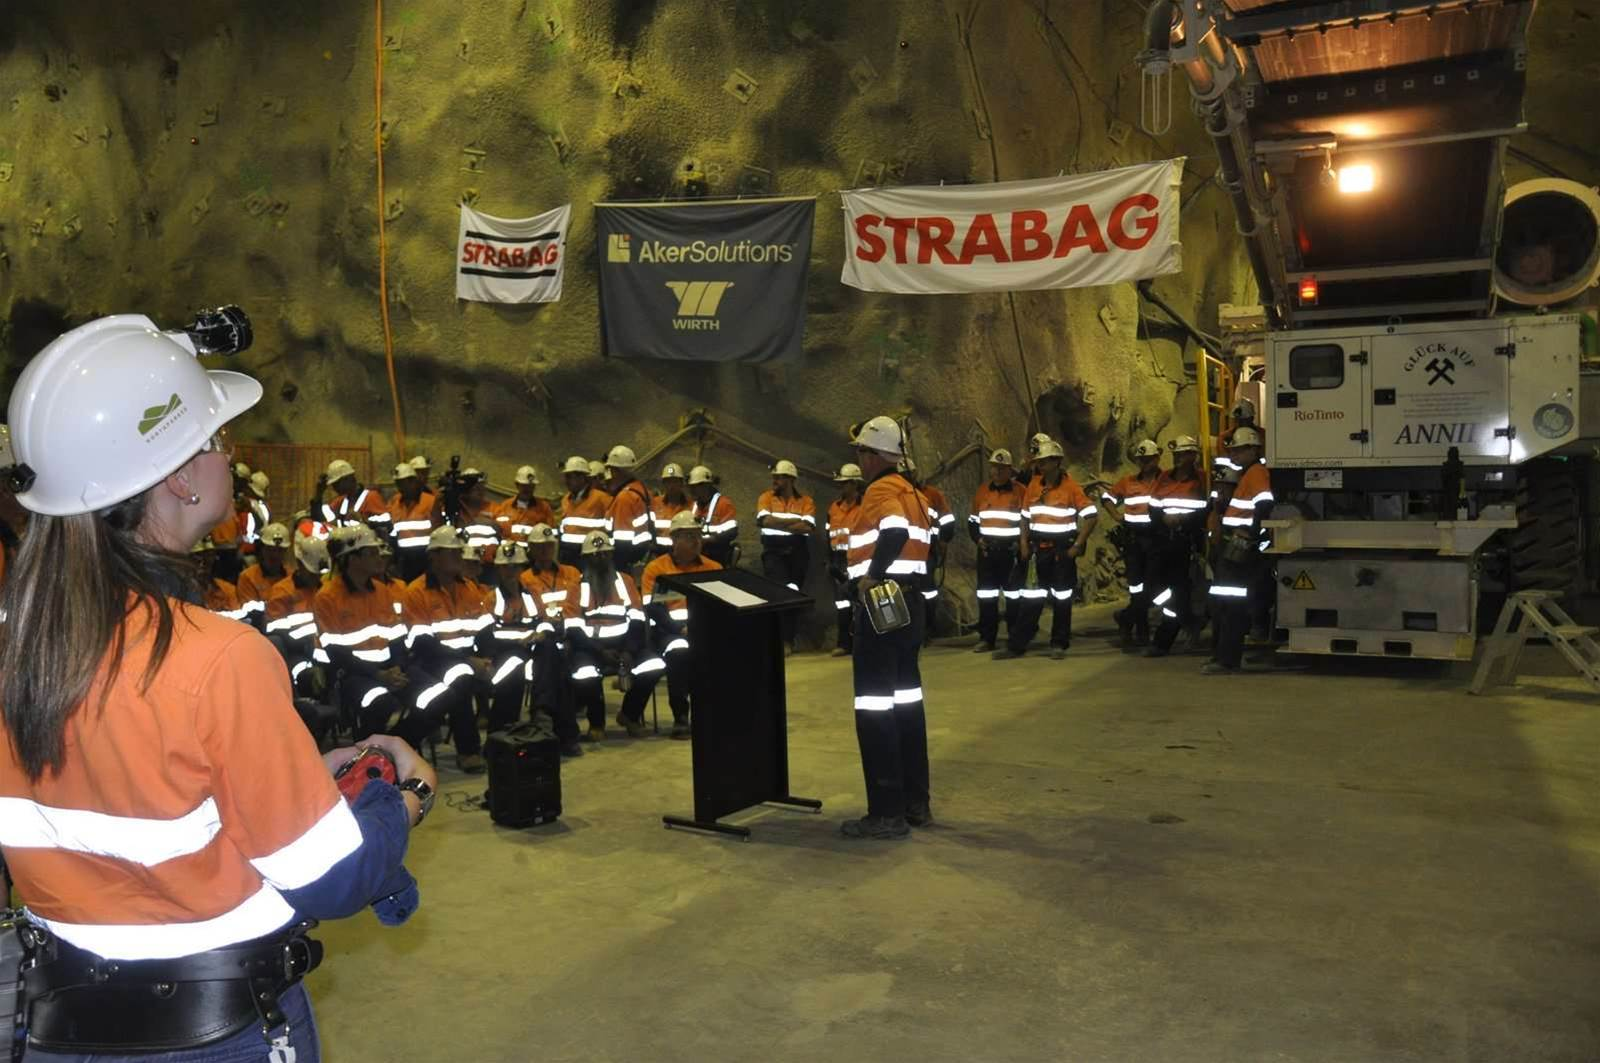 The new tunnel boring machine was officially put into action on Friday last week. An underground ceremony attended by top Rio Tinto innovation and technology executives was held to mark the occasion. The machine was actually delivered in October 2012 and took four months to assemble.